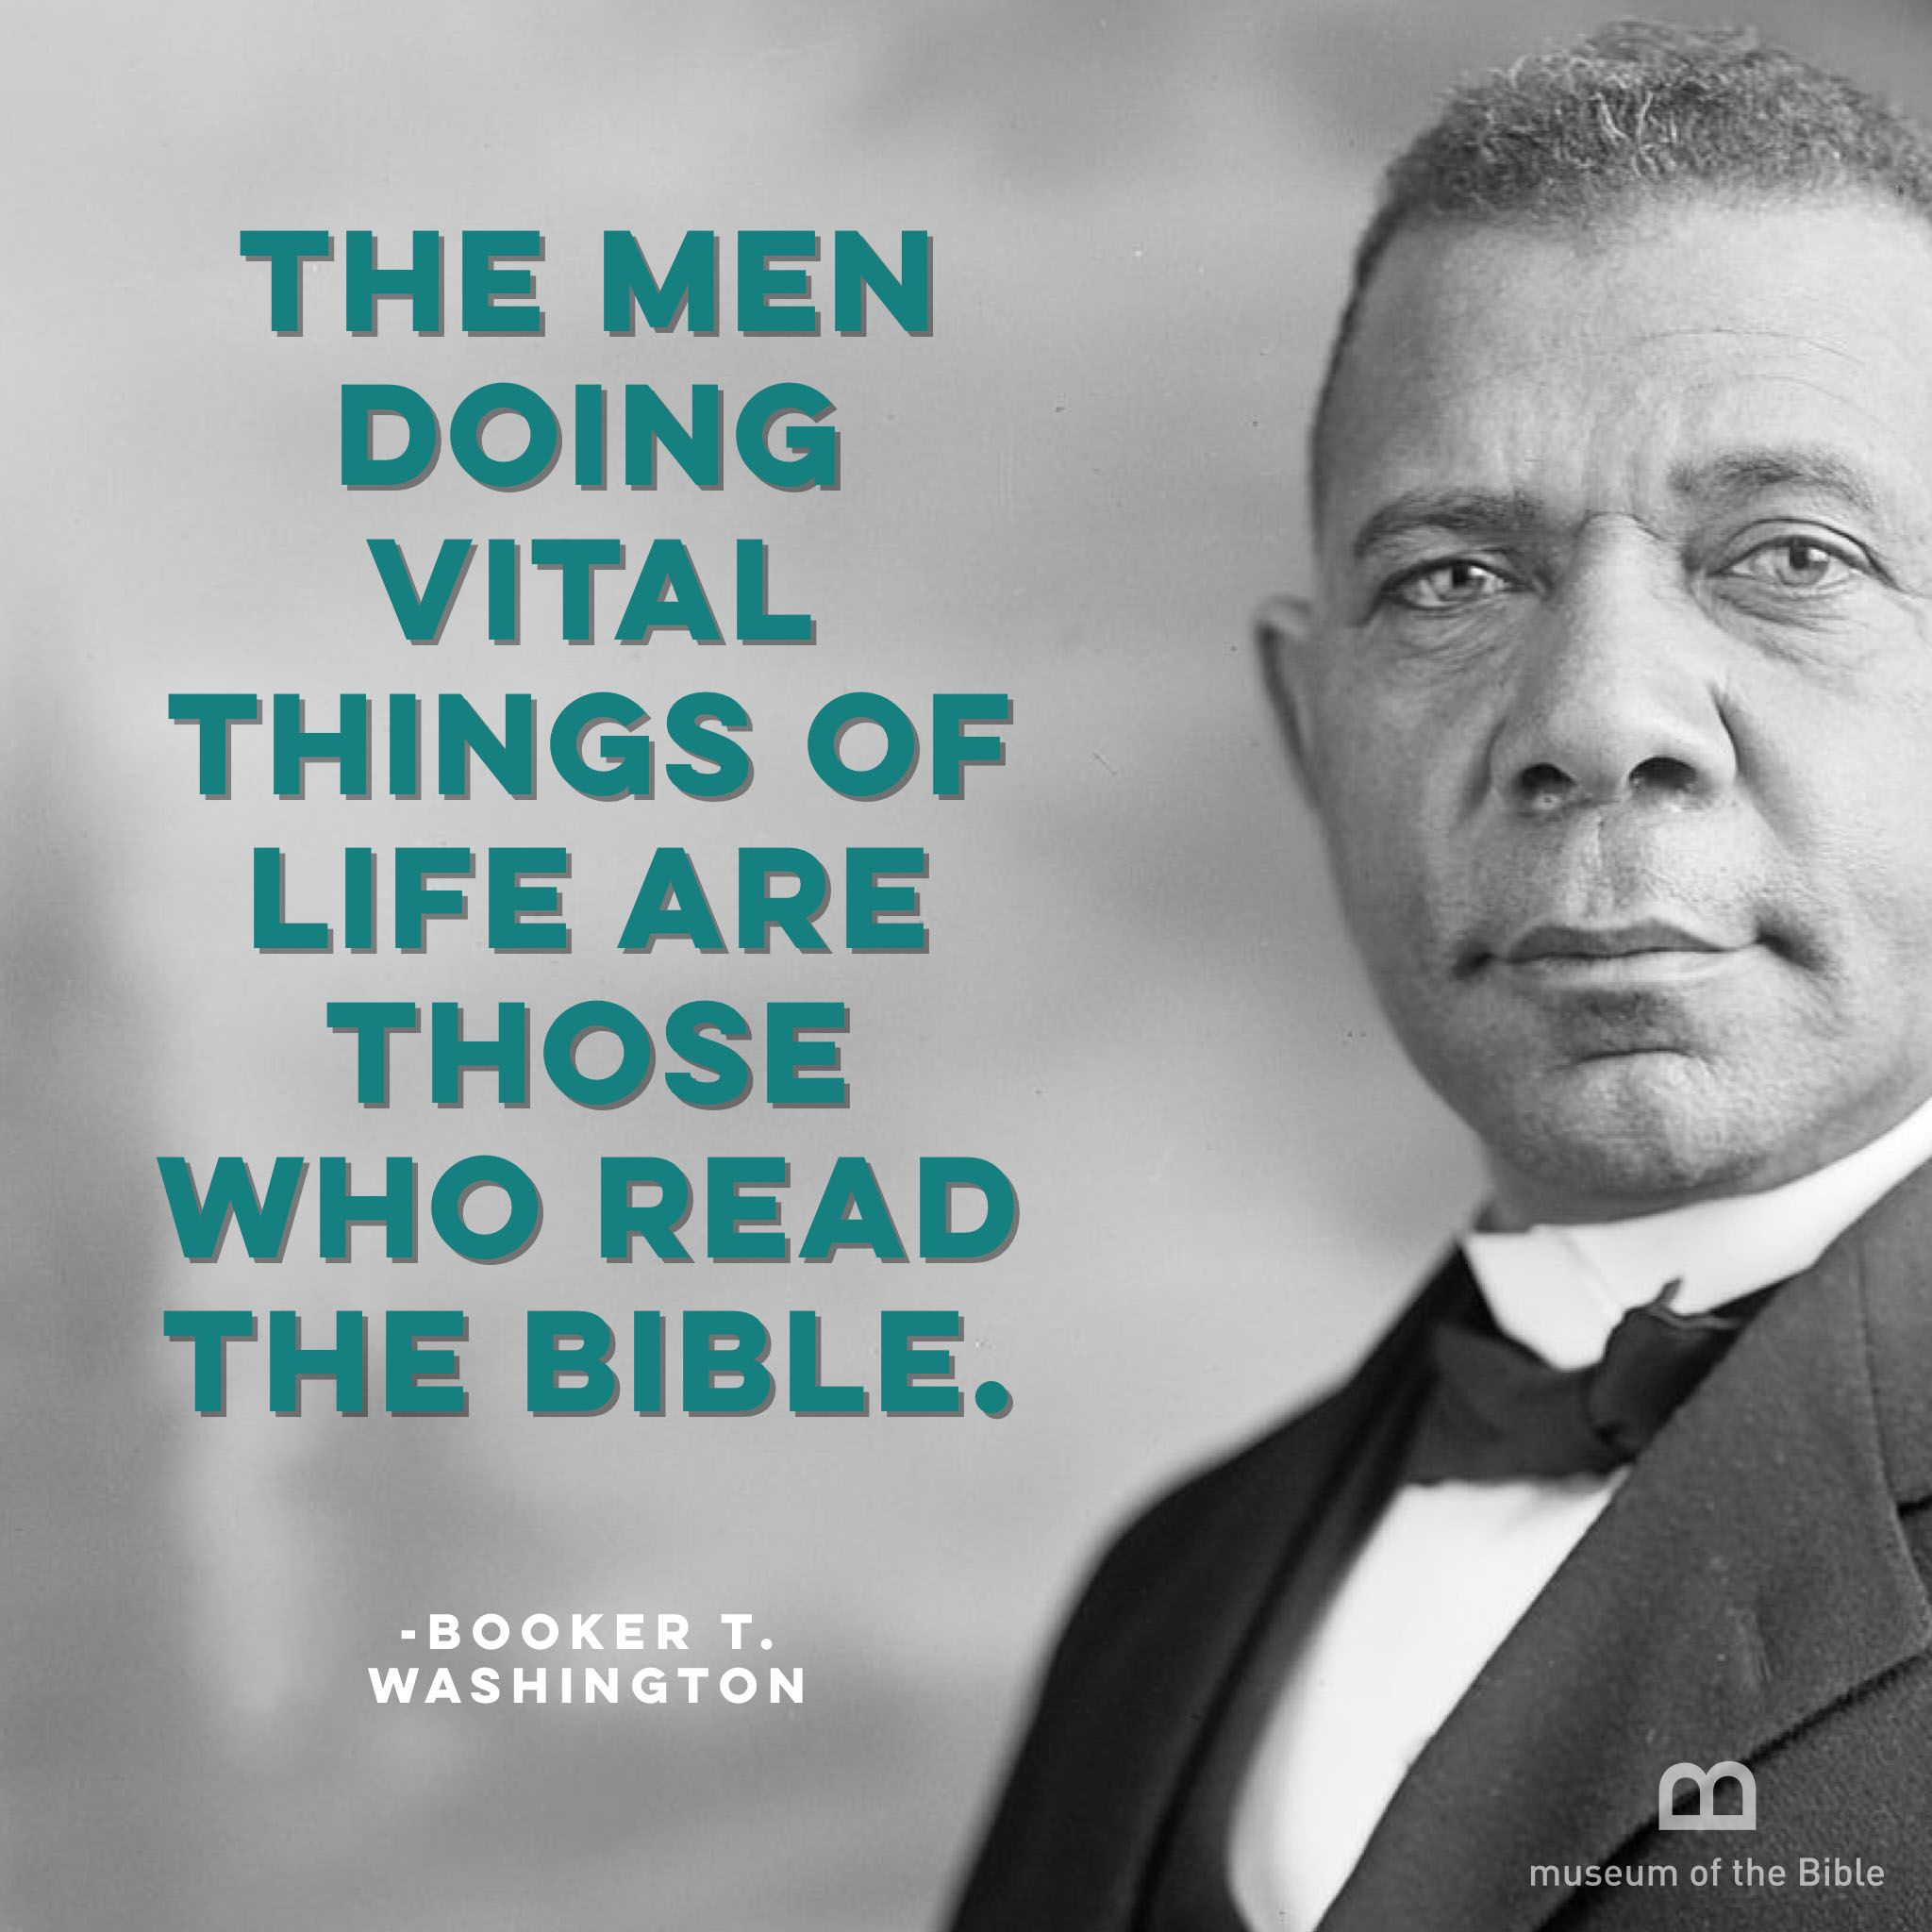 Booker T Washington On The Bible Wise Quotes Booker T Uplifting Quotes